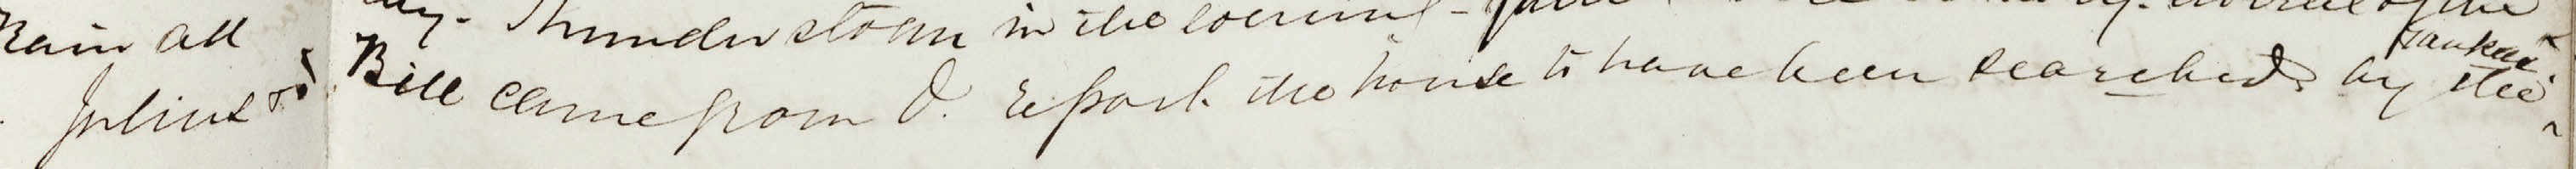 Julius + Bill came from O. [Oatlands] report the house to have been searched by Yankees. 31 March 1862